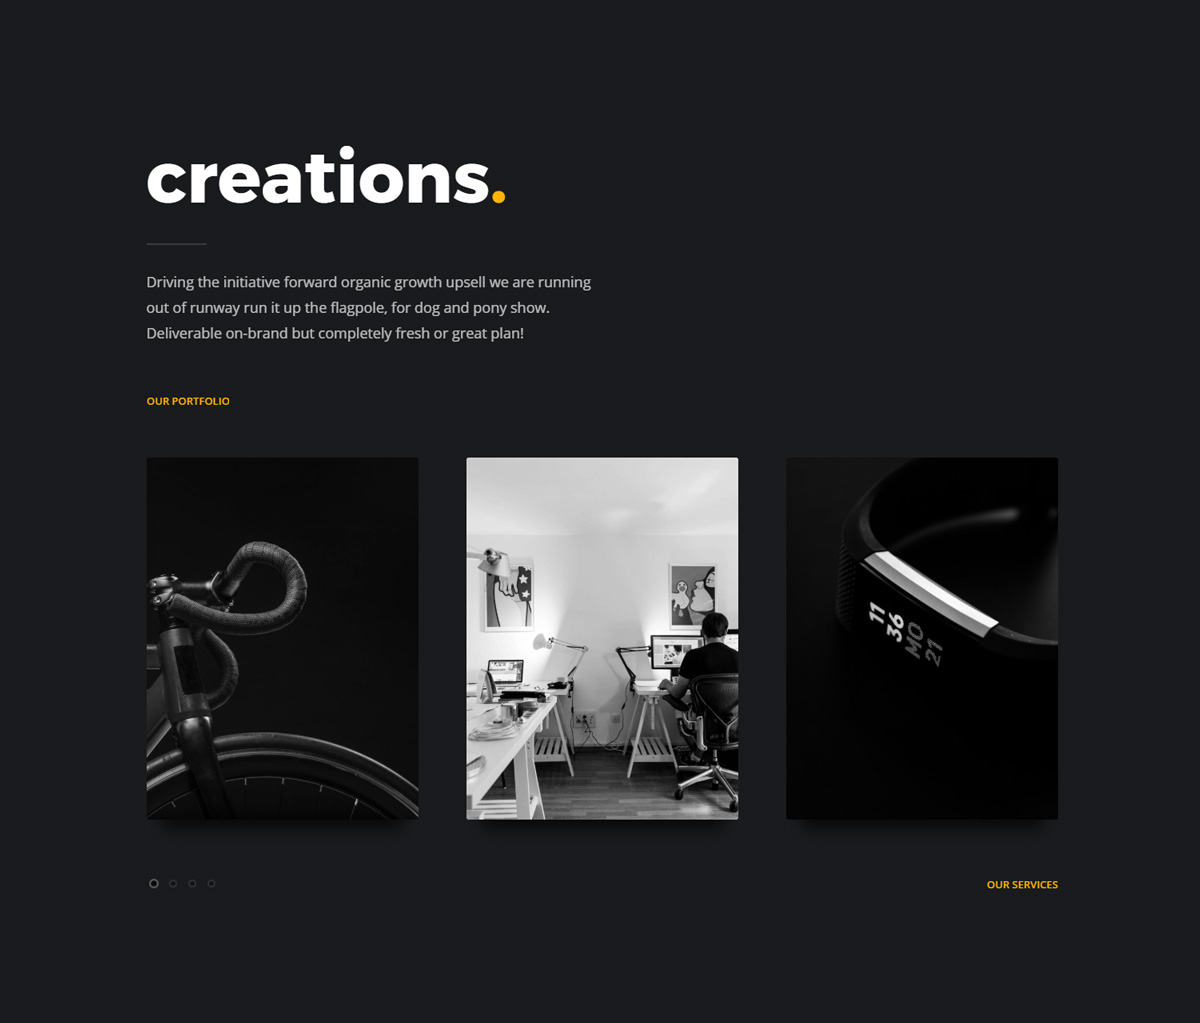 About Creative